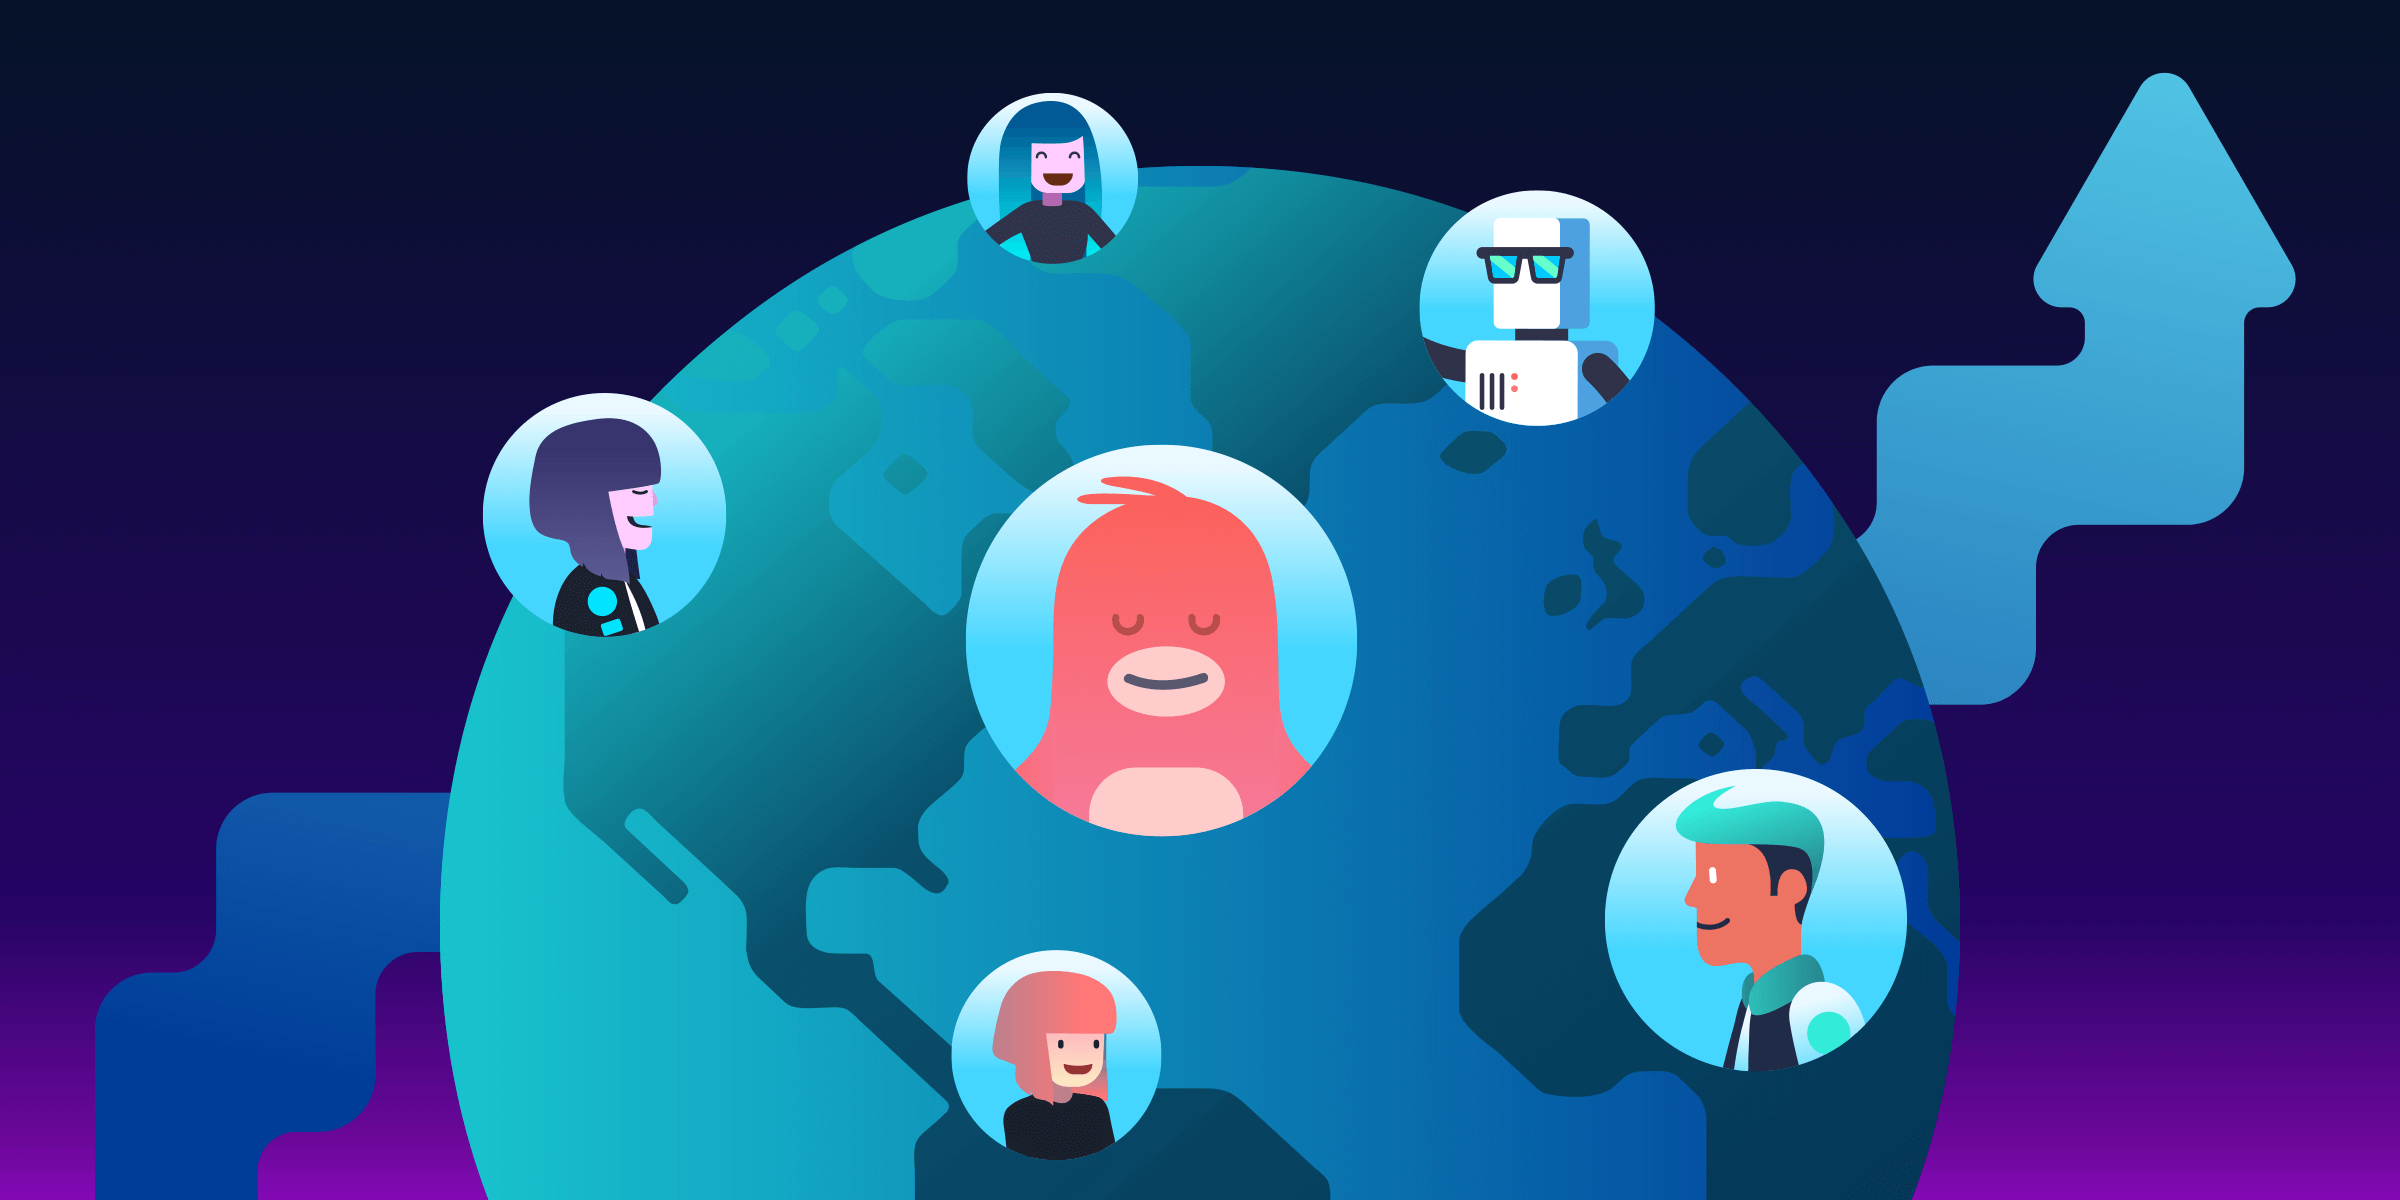 Remote Workers: State of Remote Work in 2018